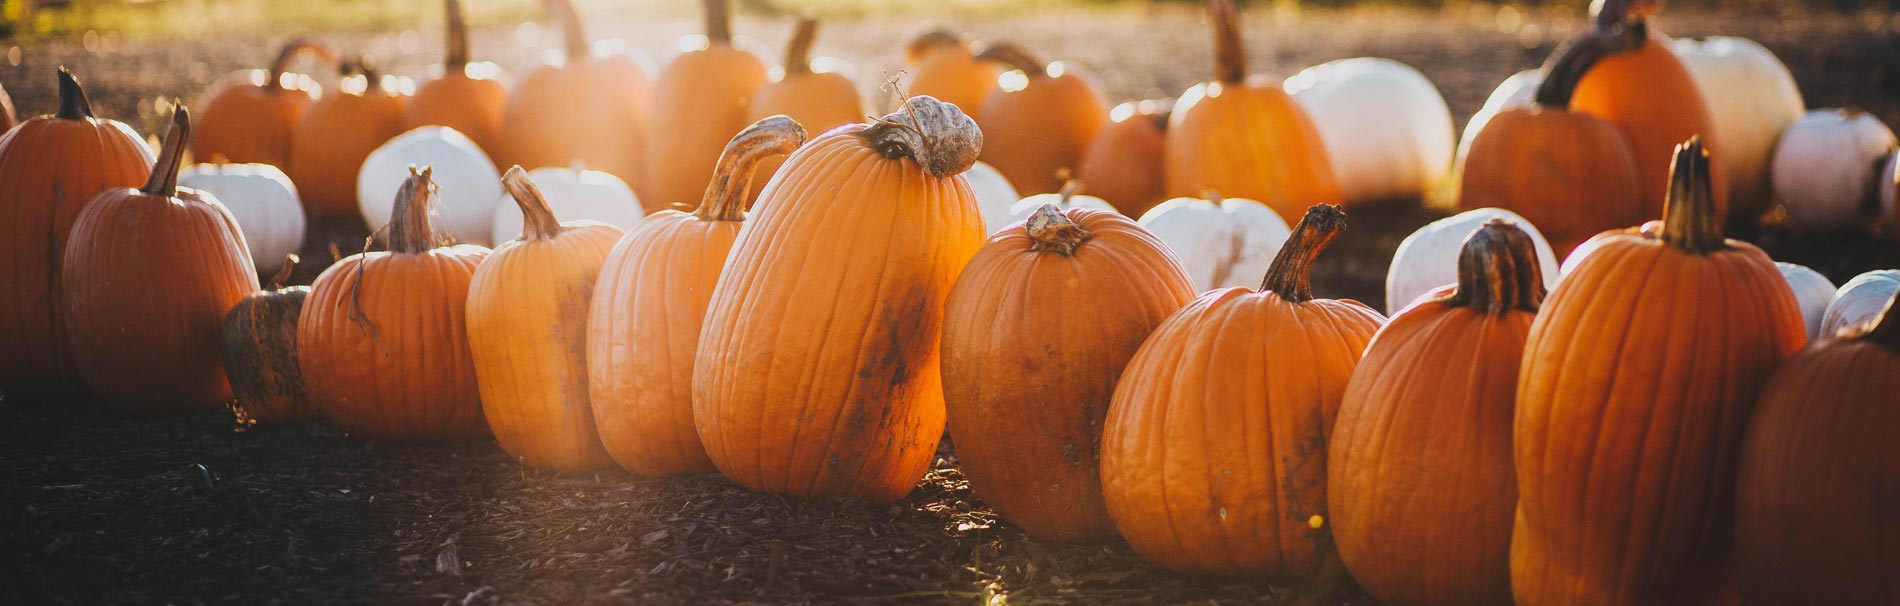 11 Things We Love About Fall - Greenville Retirement